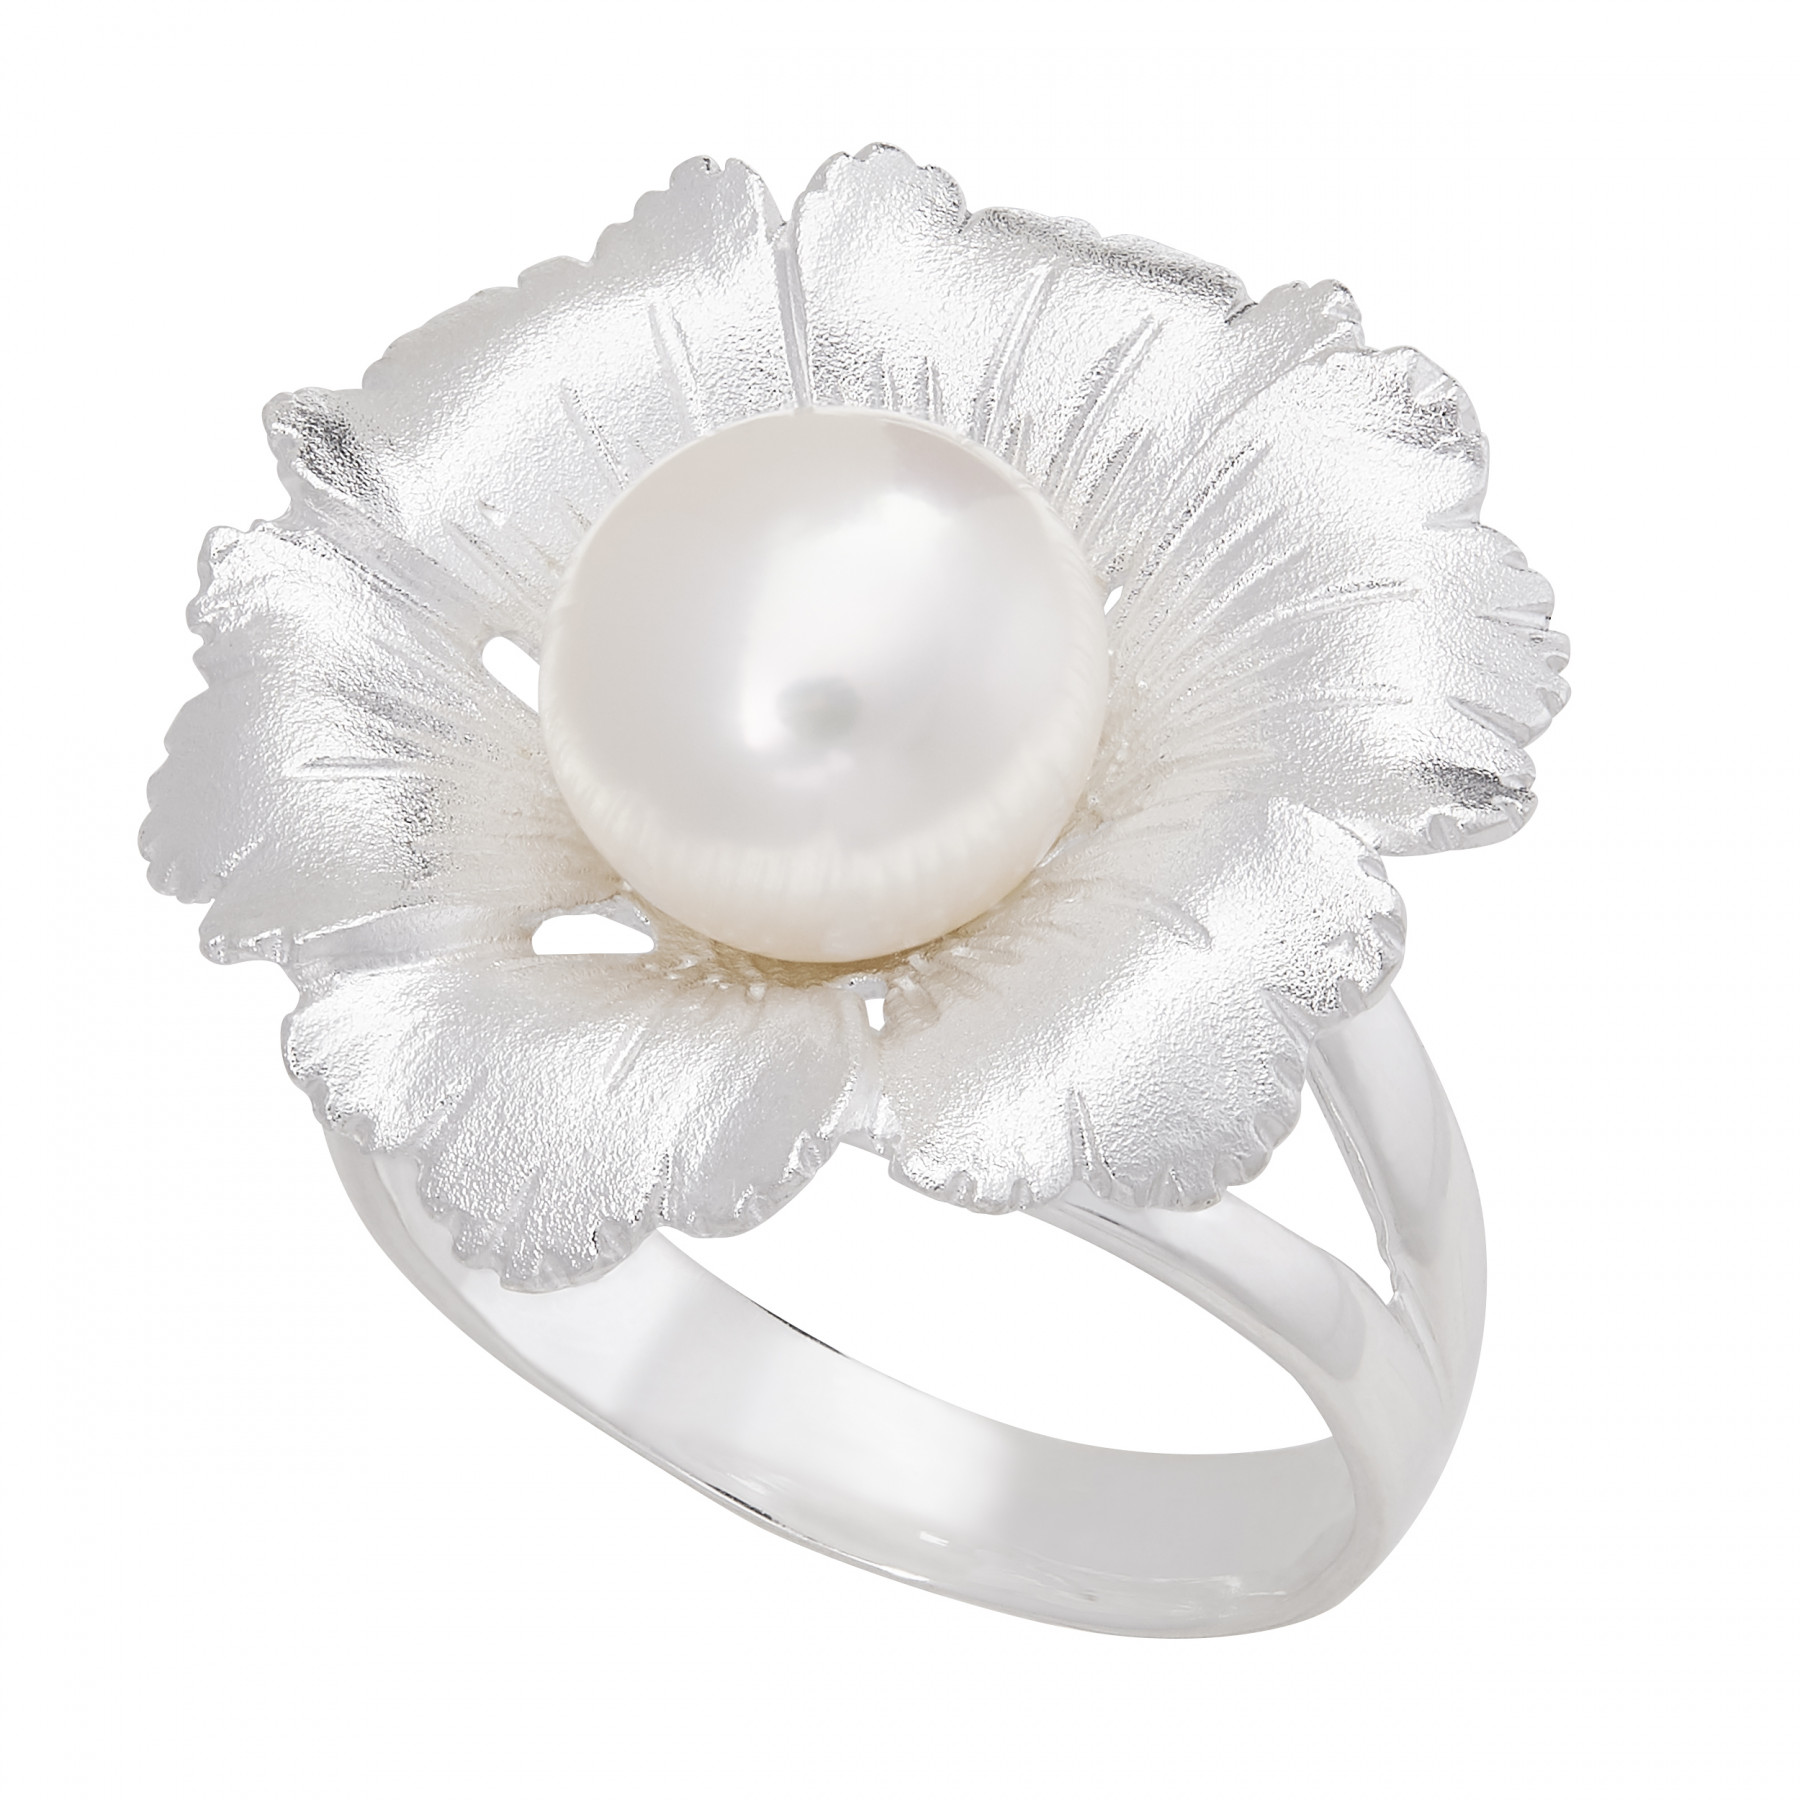 Honora Fiore Size 7 Pearl and Silver Flower Ring